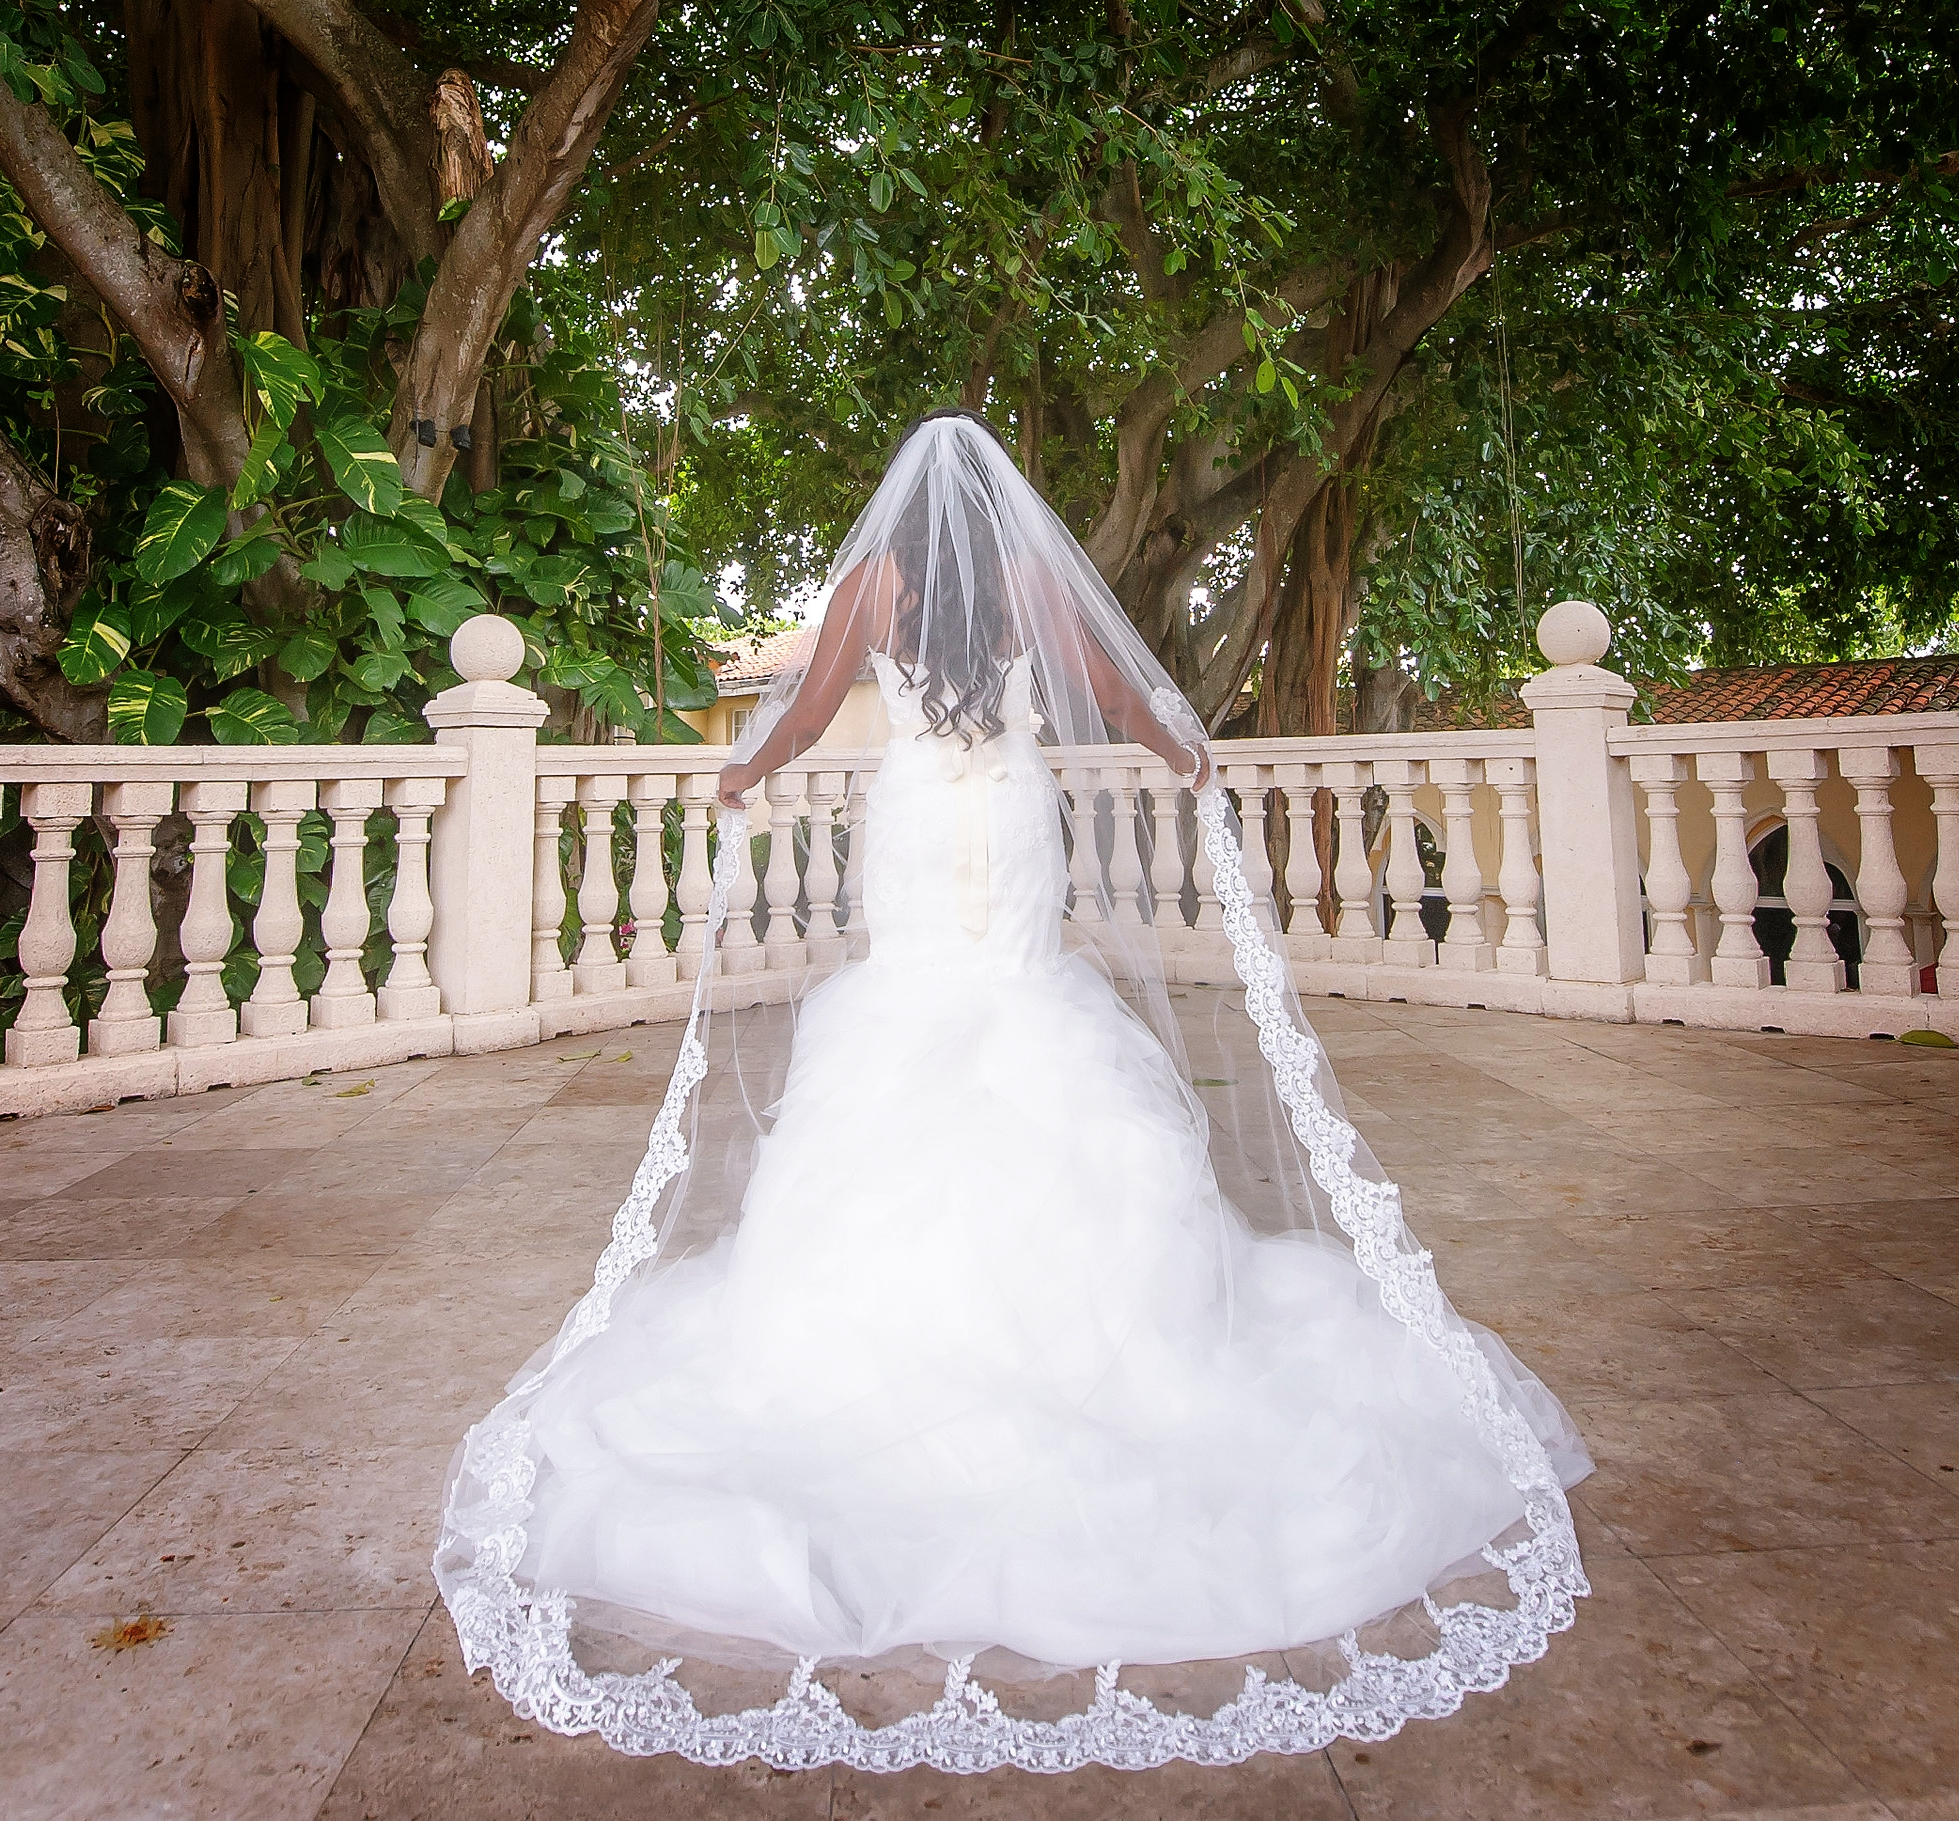 Lace Veil, Partially Laced to Waist - $77